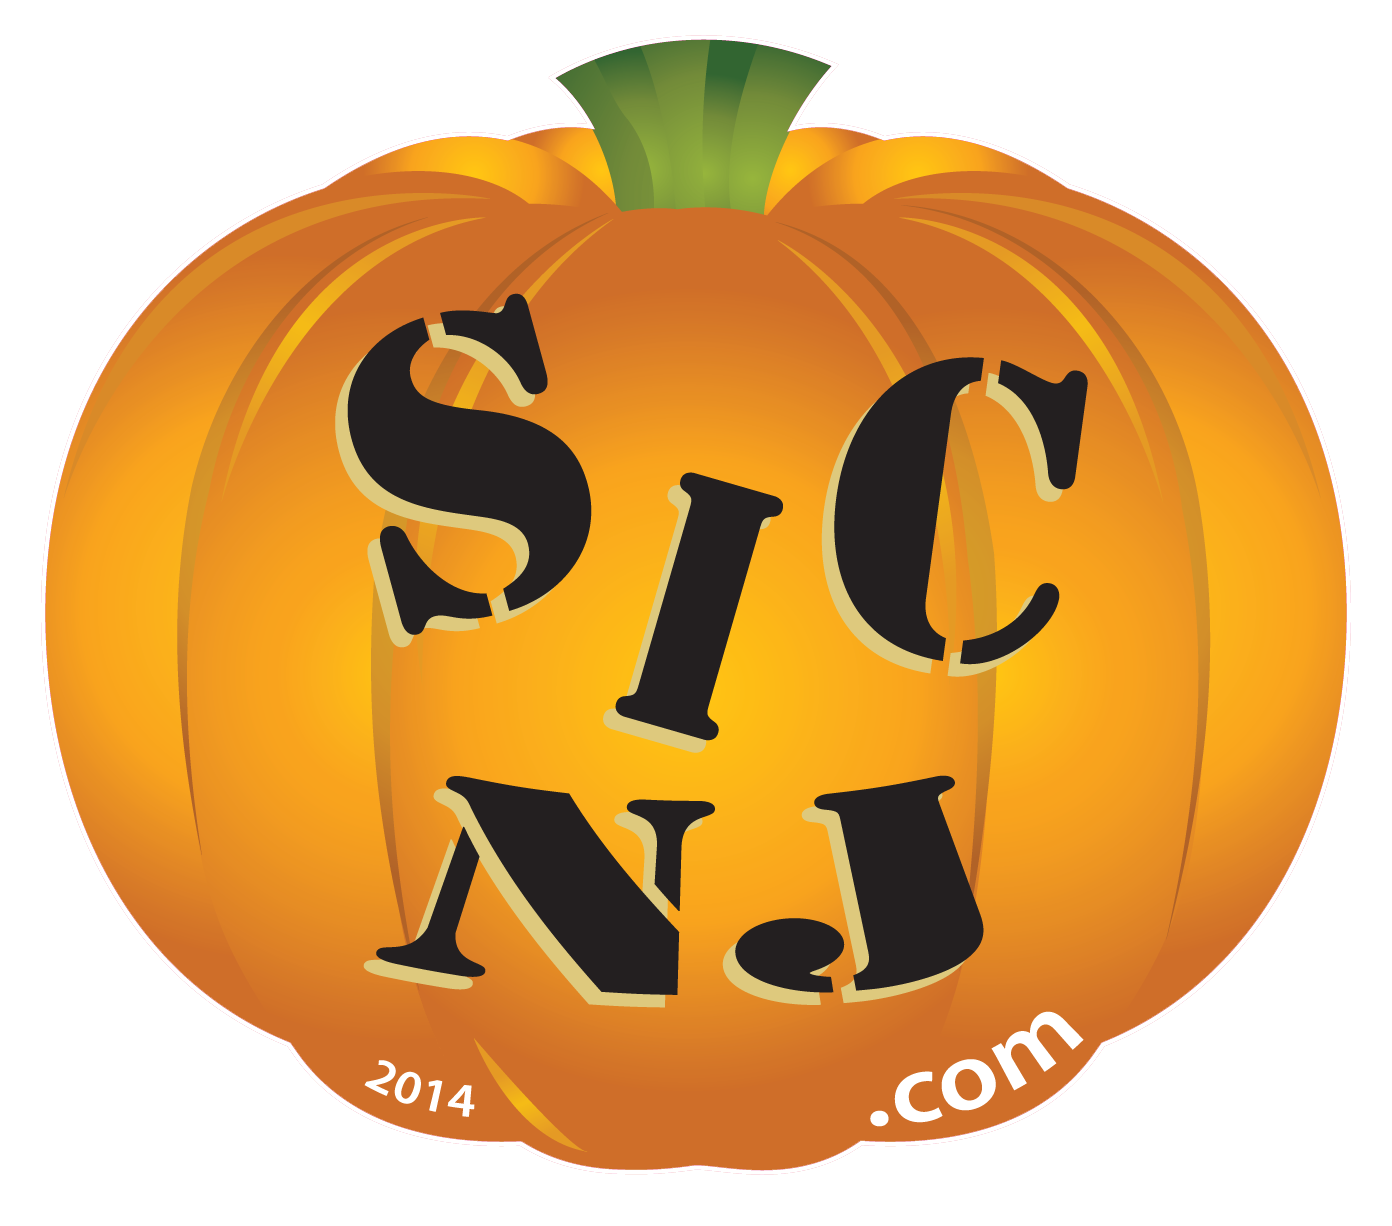 Pumpkin banner clipart banner free library AtTheShore.com - Promotional Teeshirts & Car Magnets - attheshore.com banner free library